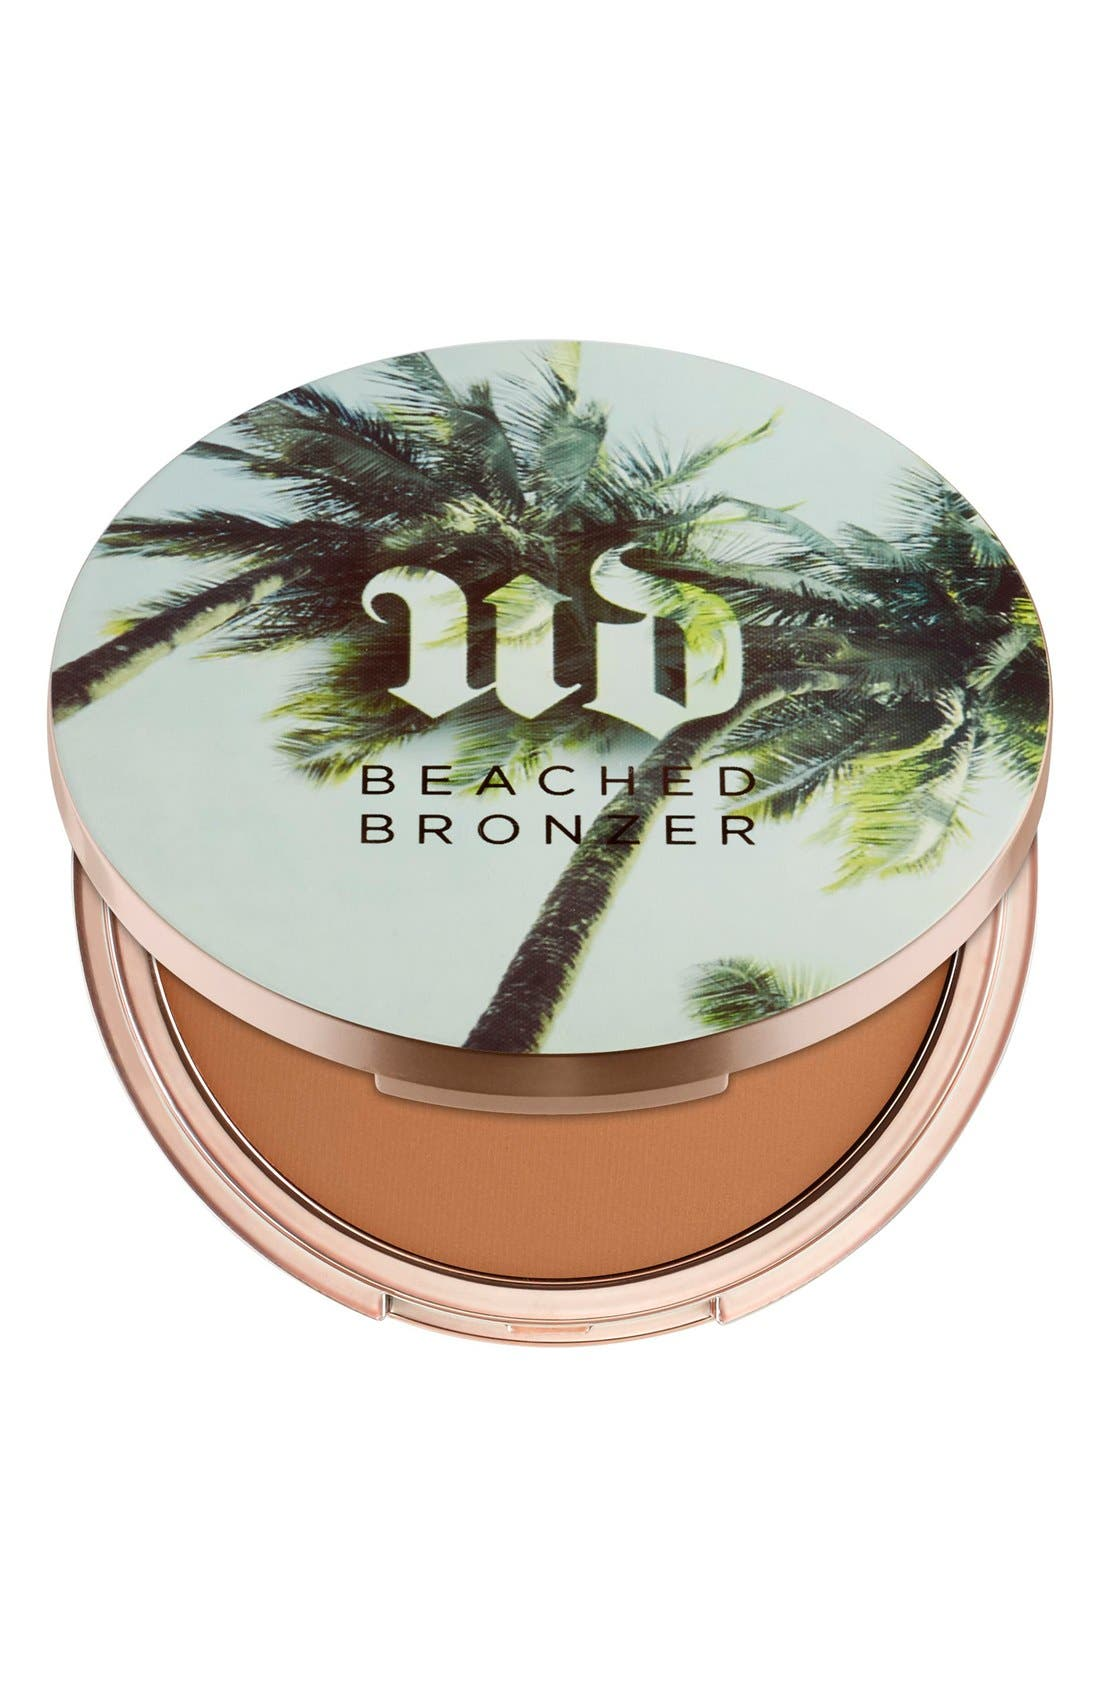 Beached Bronzer,                         Main,                         color, BRONZED